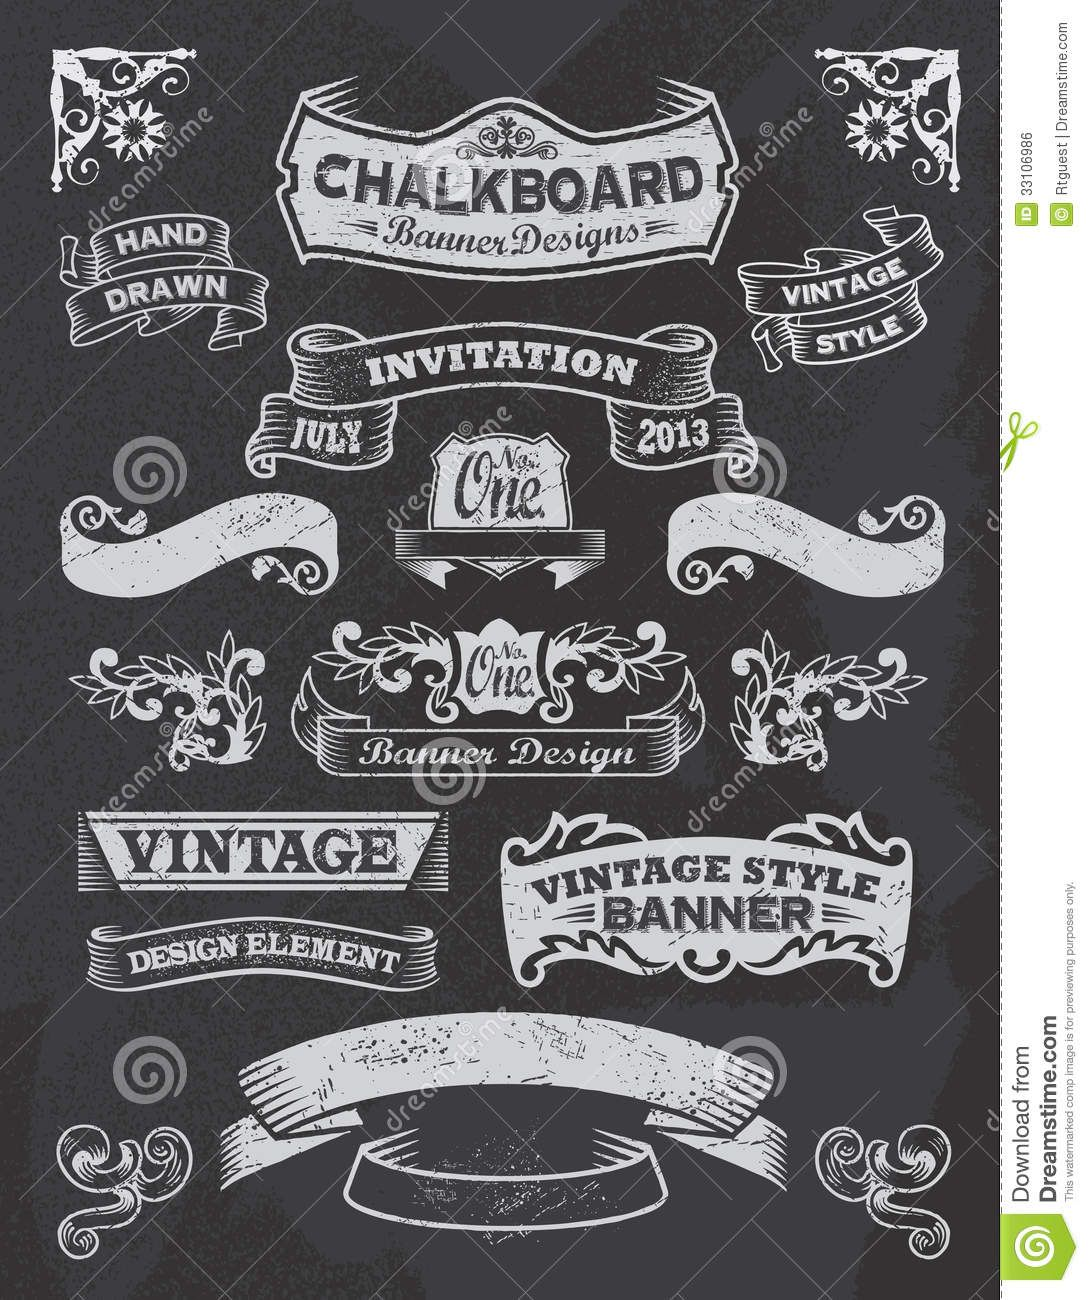 Chalkboard Designs Ideas 10 chalkboard tips and tricks Stock Vector Of Chalkboard Design Elements Frames And Banners Vector Art By Rtguest From The Collection Istock Get Affordable Vector Art At Thinkstock